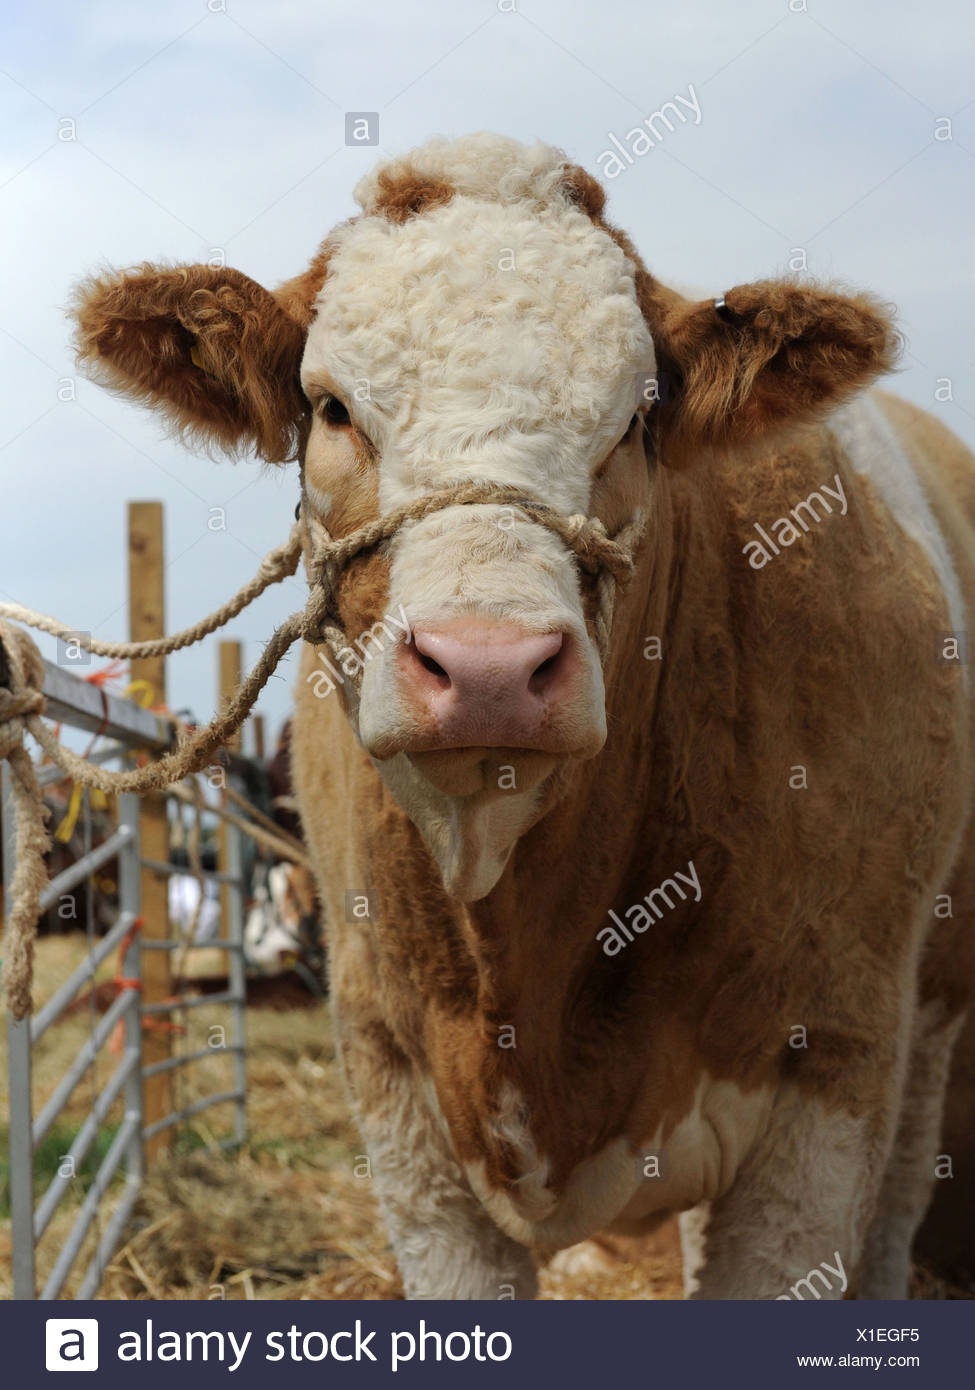 A brown and white bull wearing a harness - Stock Image